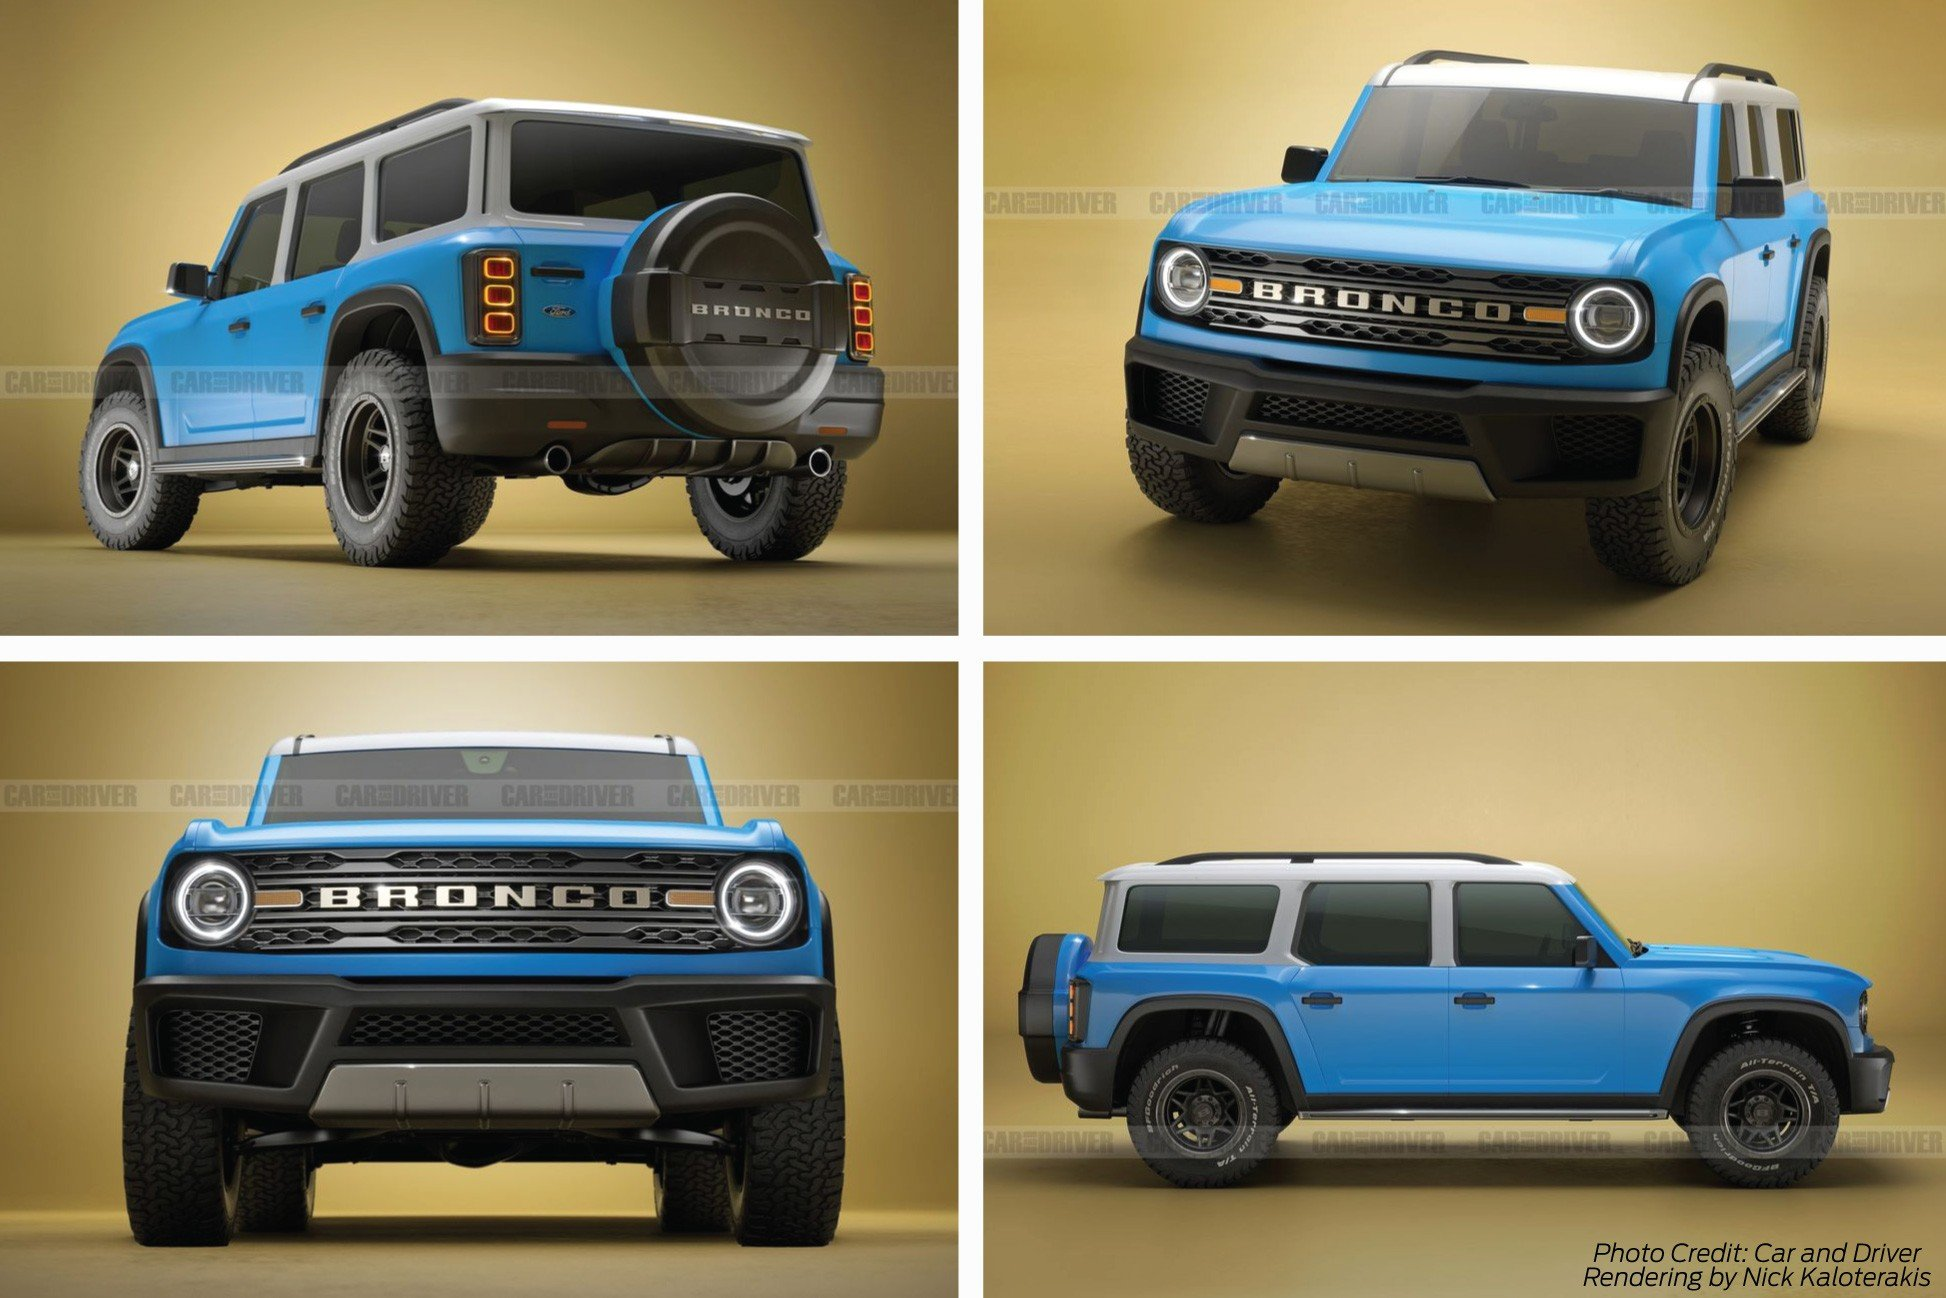 2021 Ford Bronco Rendering from Car and Driver